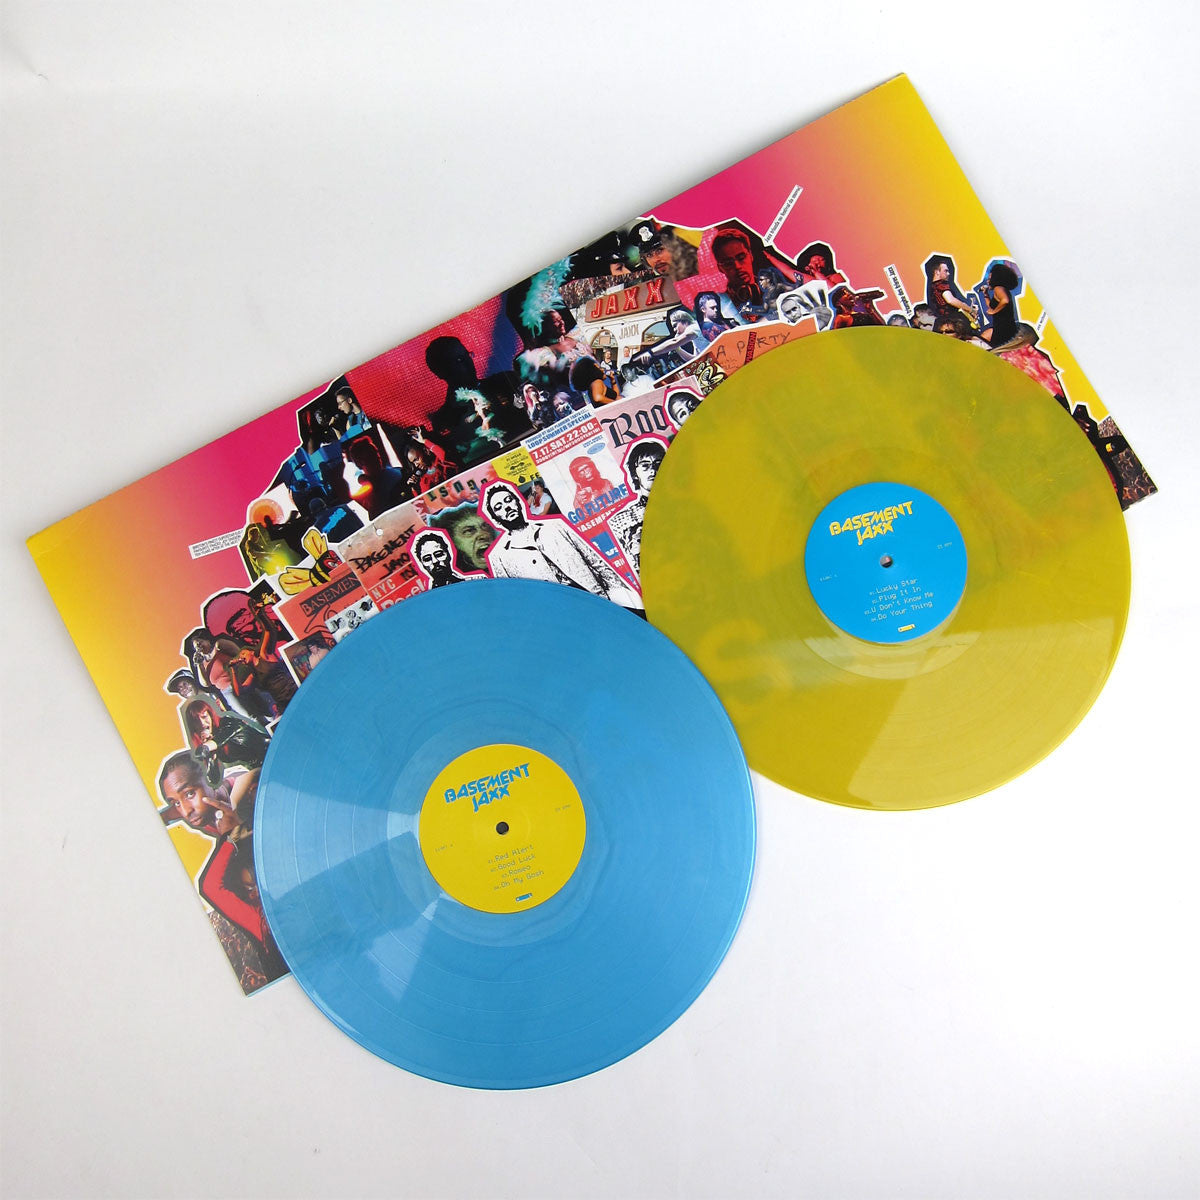 Basement Jaxx: The Singles (Colored Vinyl, Free MP3) Vinyl 2LP detail